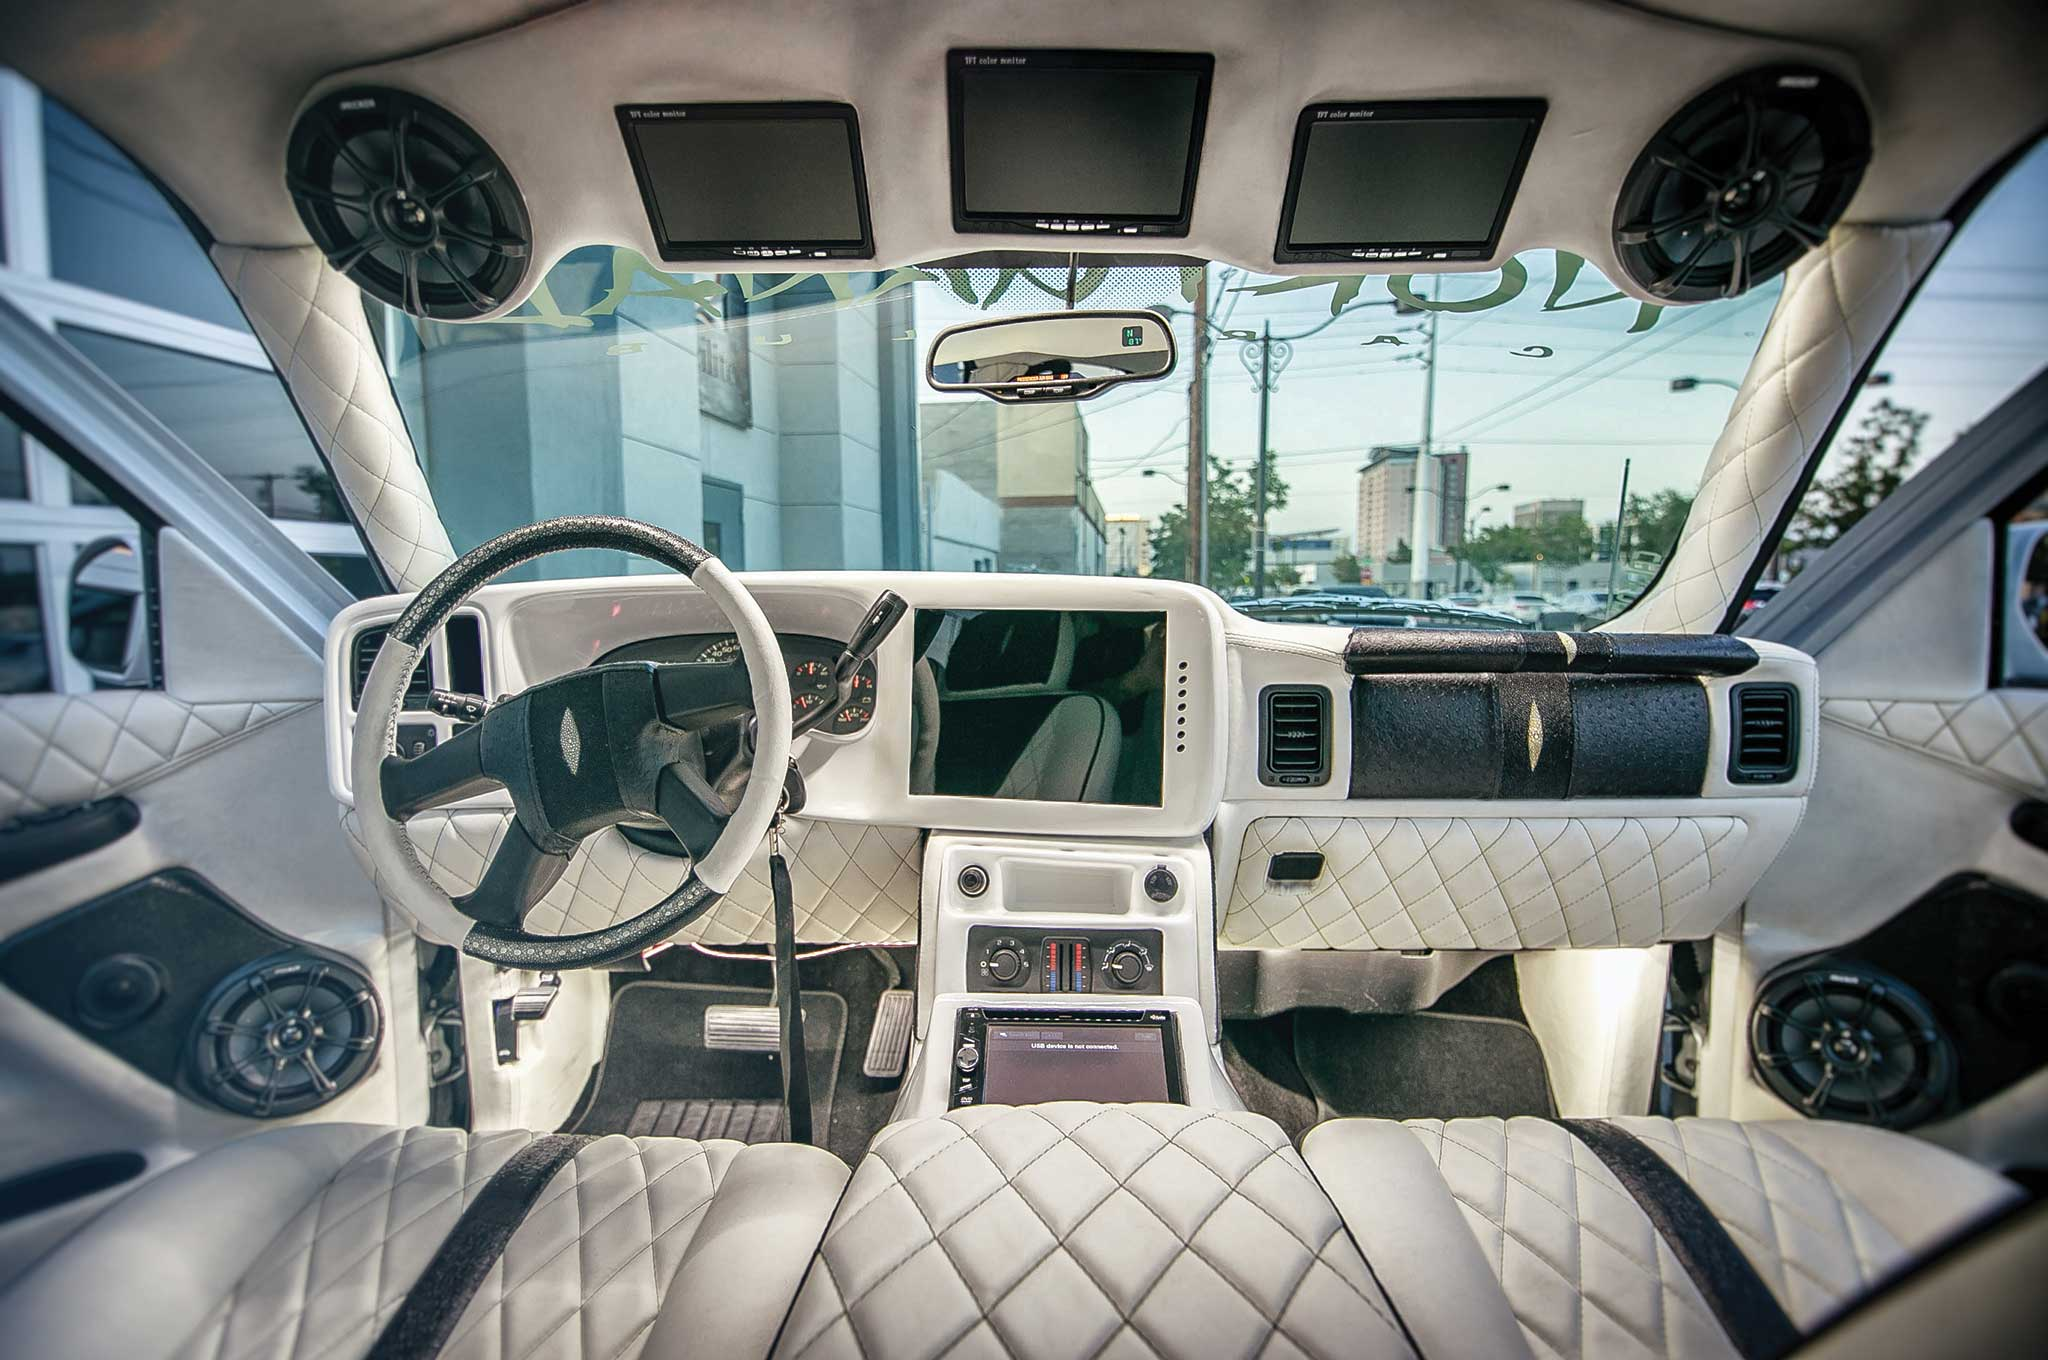 Chevrolet Tahoe Diamond Pattern Stitched Interior on 2018 Chevy Tahoe